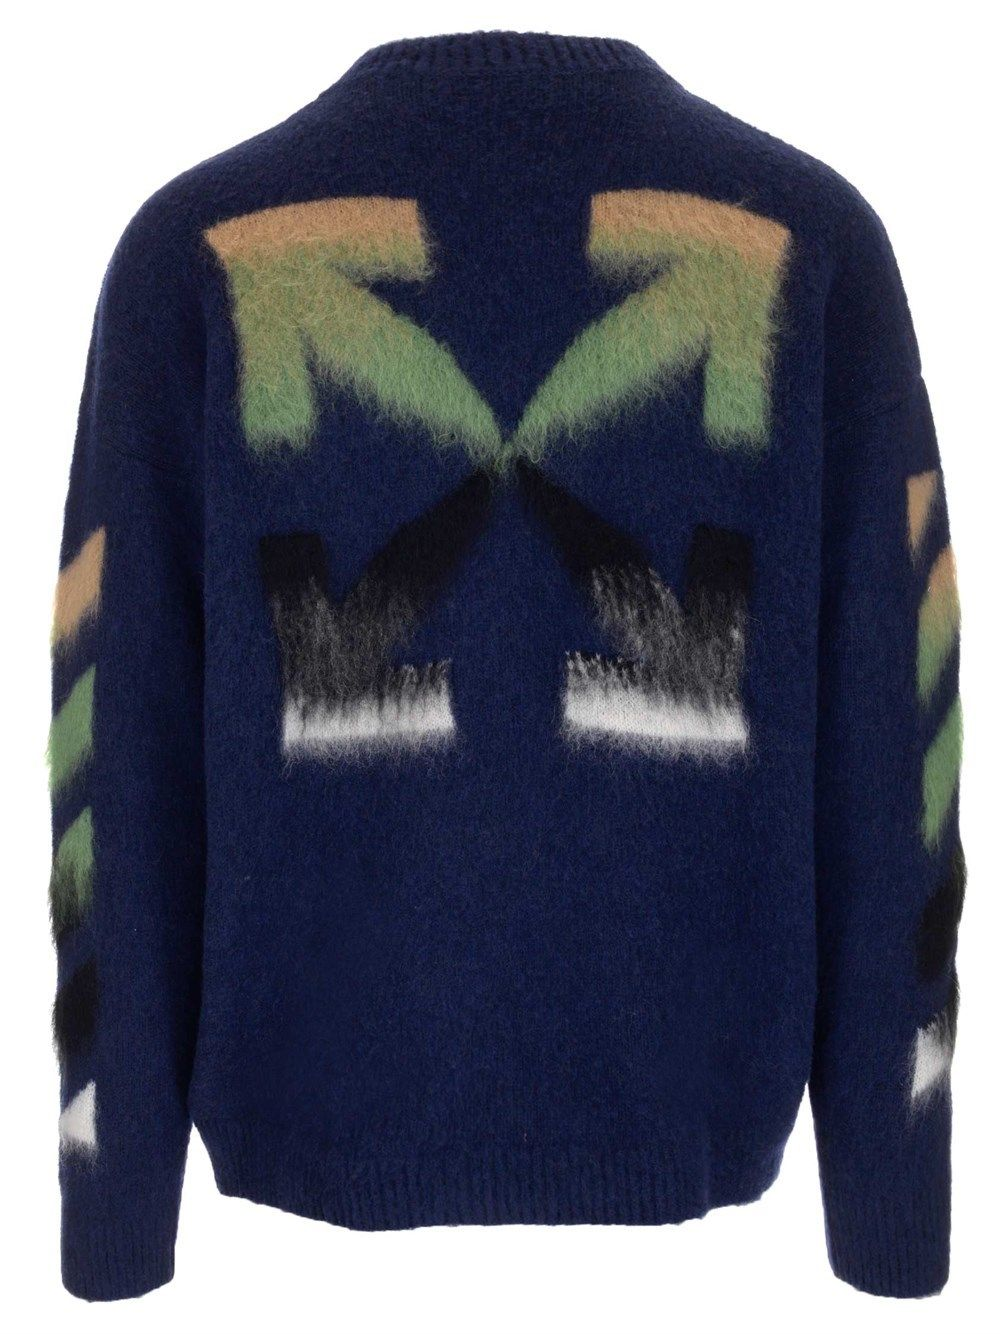 OFF-WHITE Sweaters OFF-WHITE MEN'S BLUE OTHER MATERIALS SWEATER